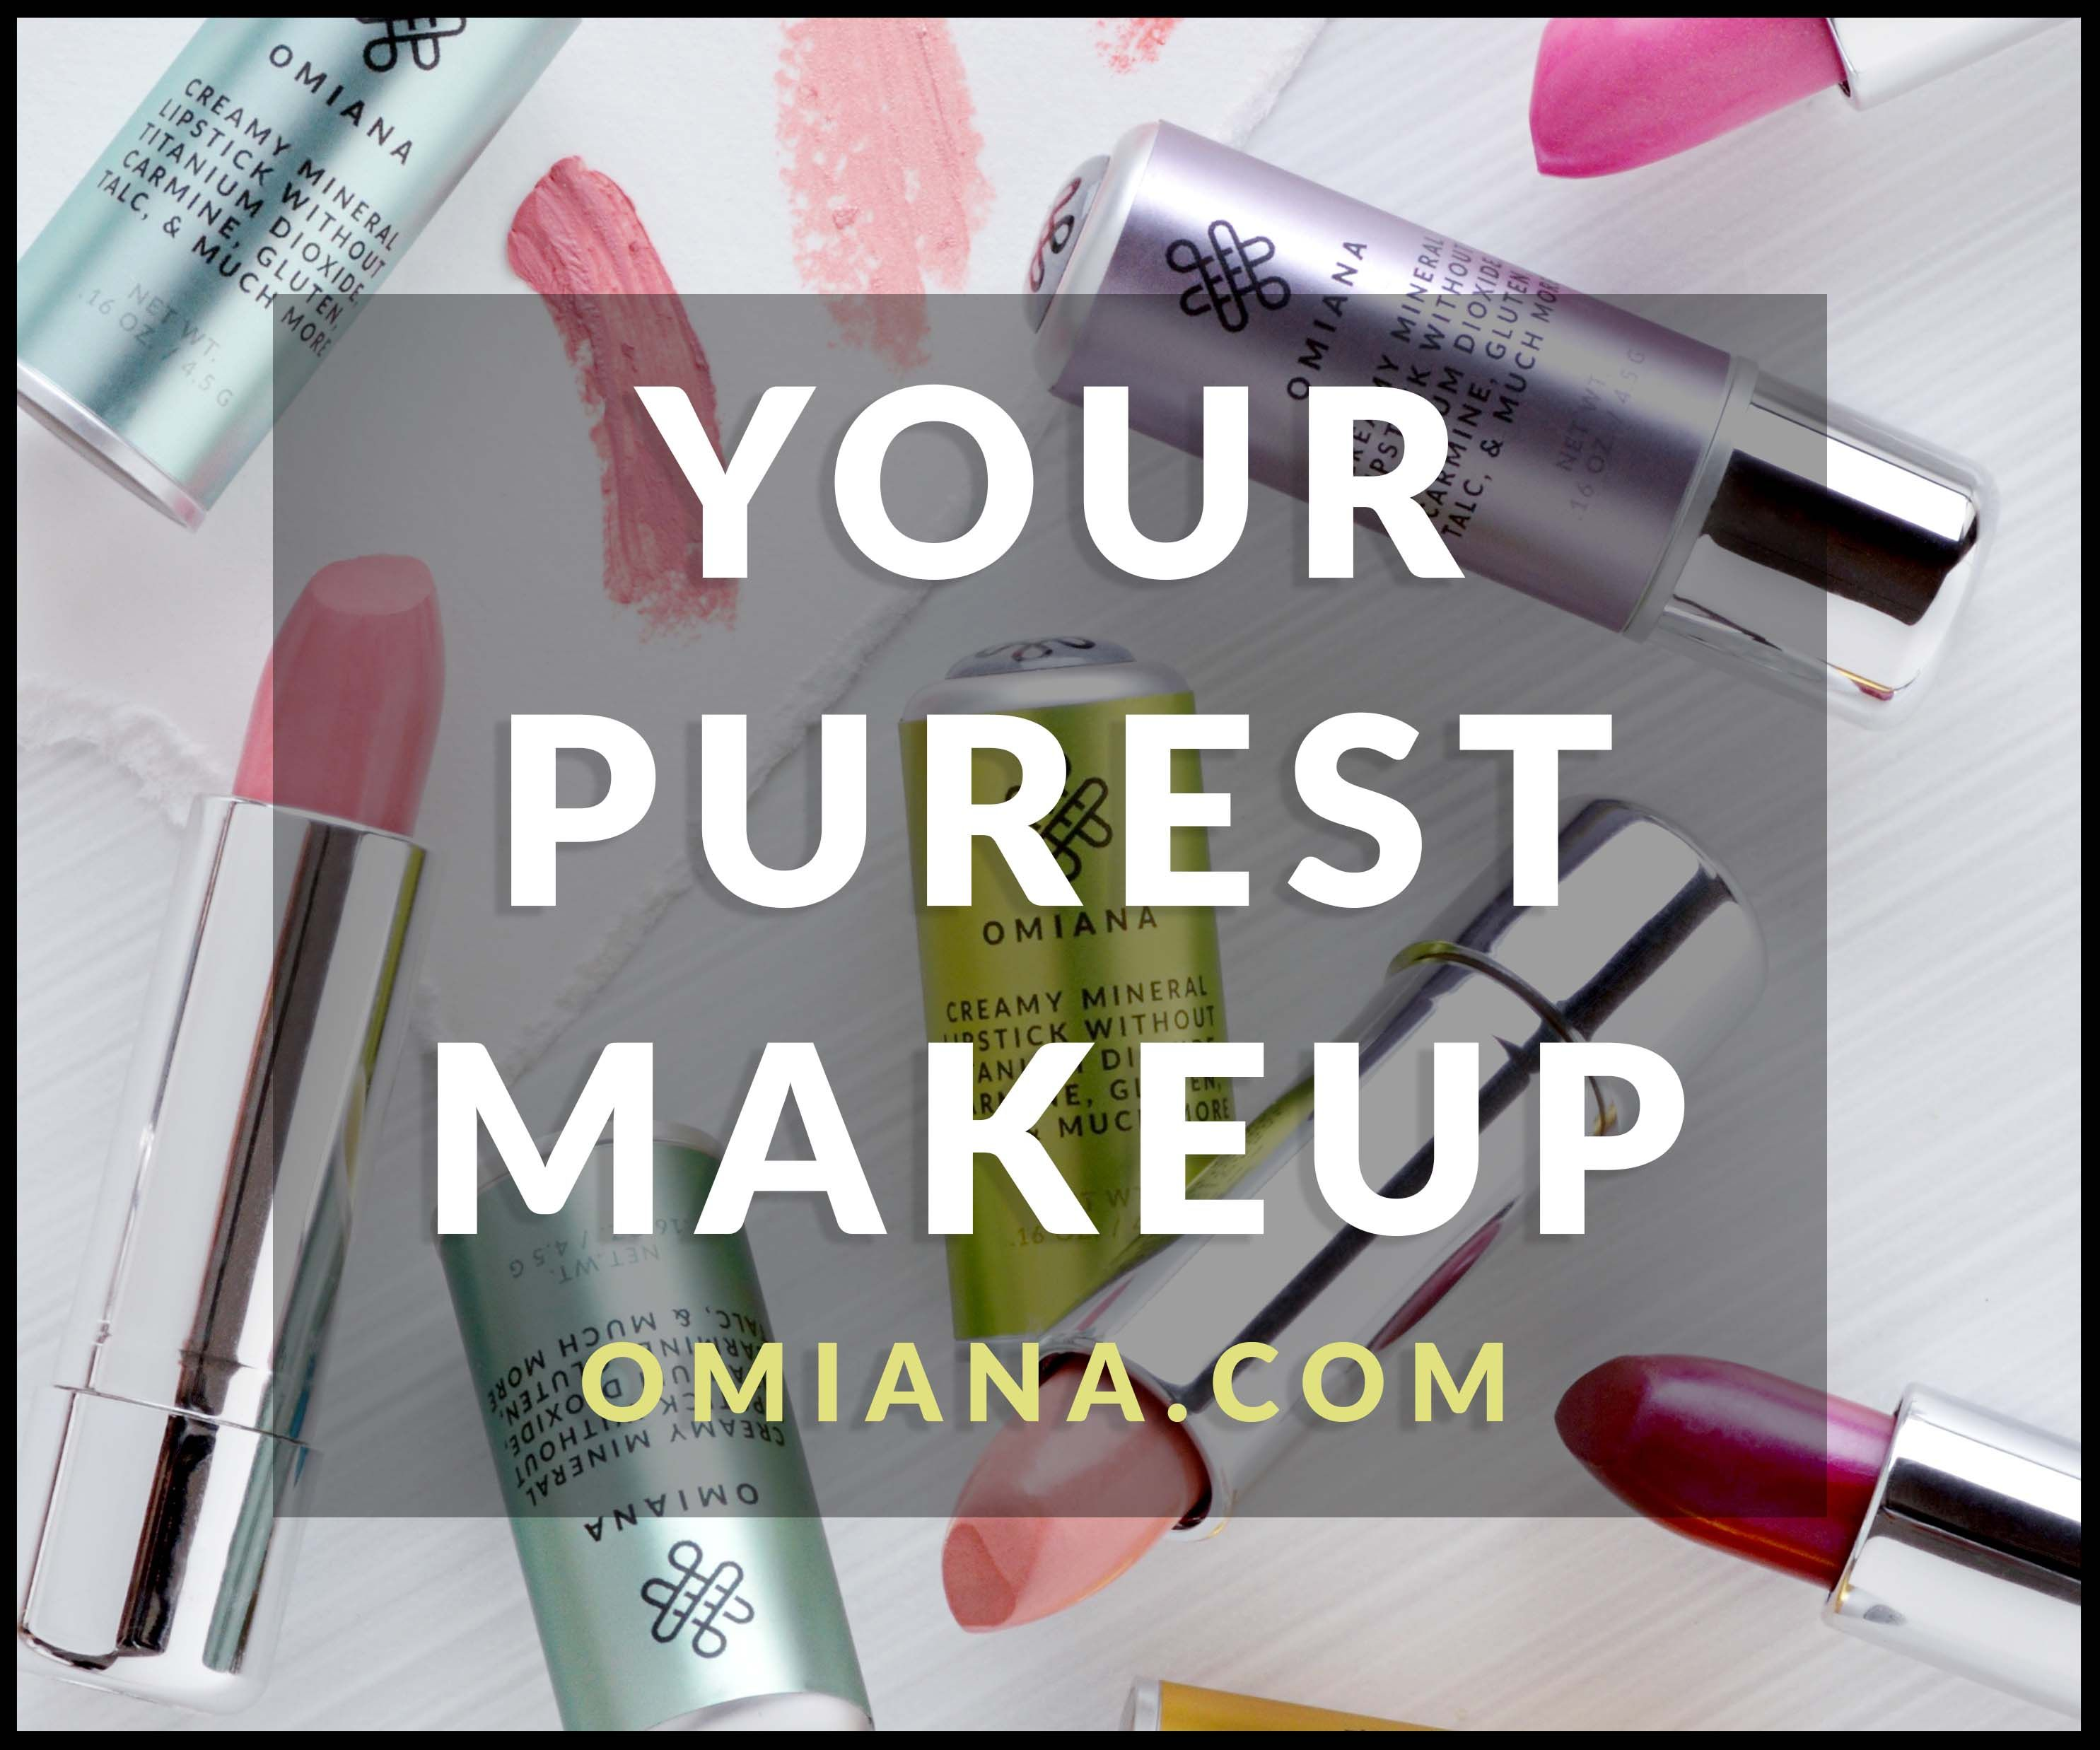 Want makeup that is made with organic ingredients plus is